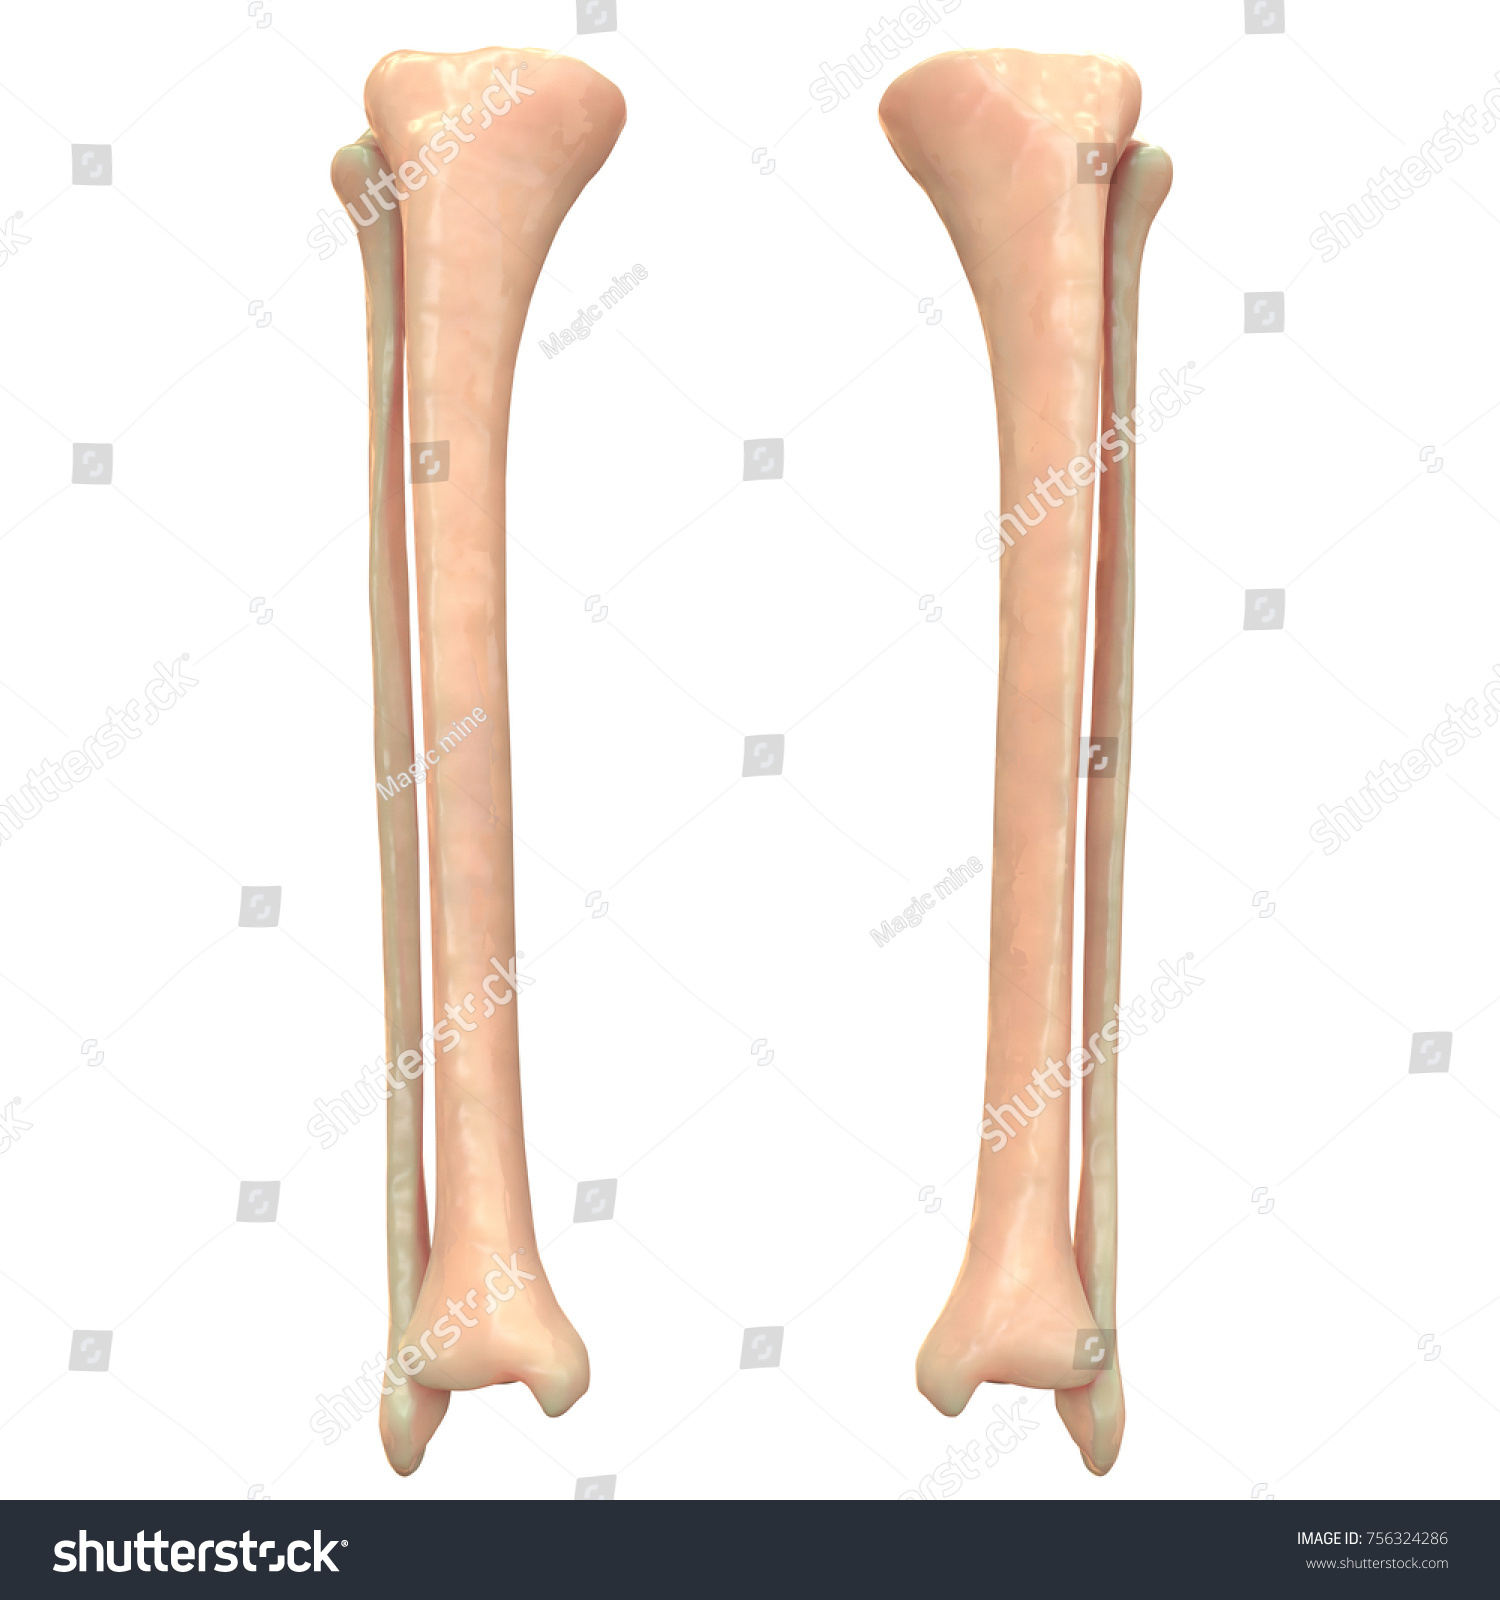 3 D Illustration Skeleton System Tibia Fibula Stock Illustration ...